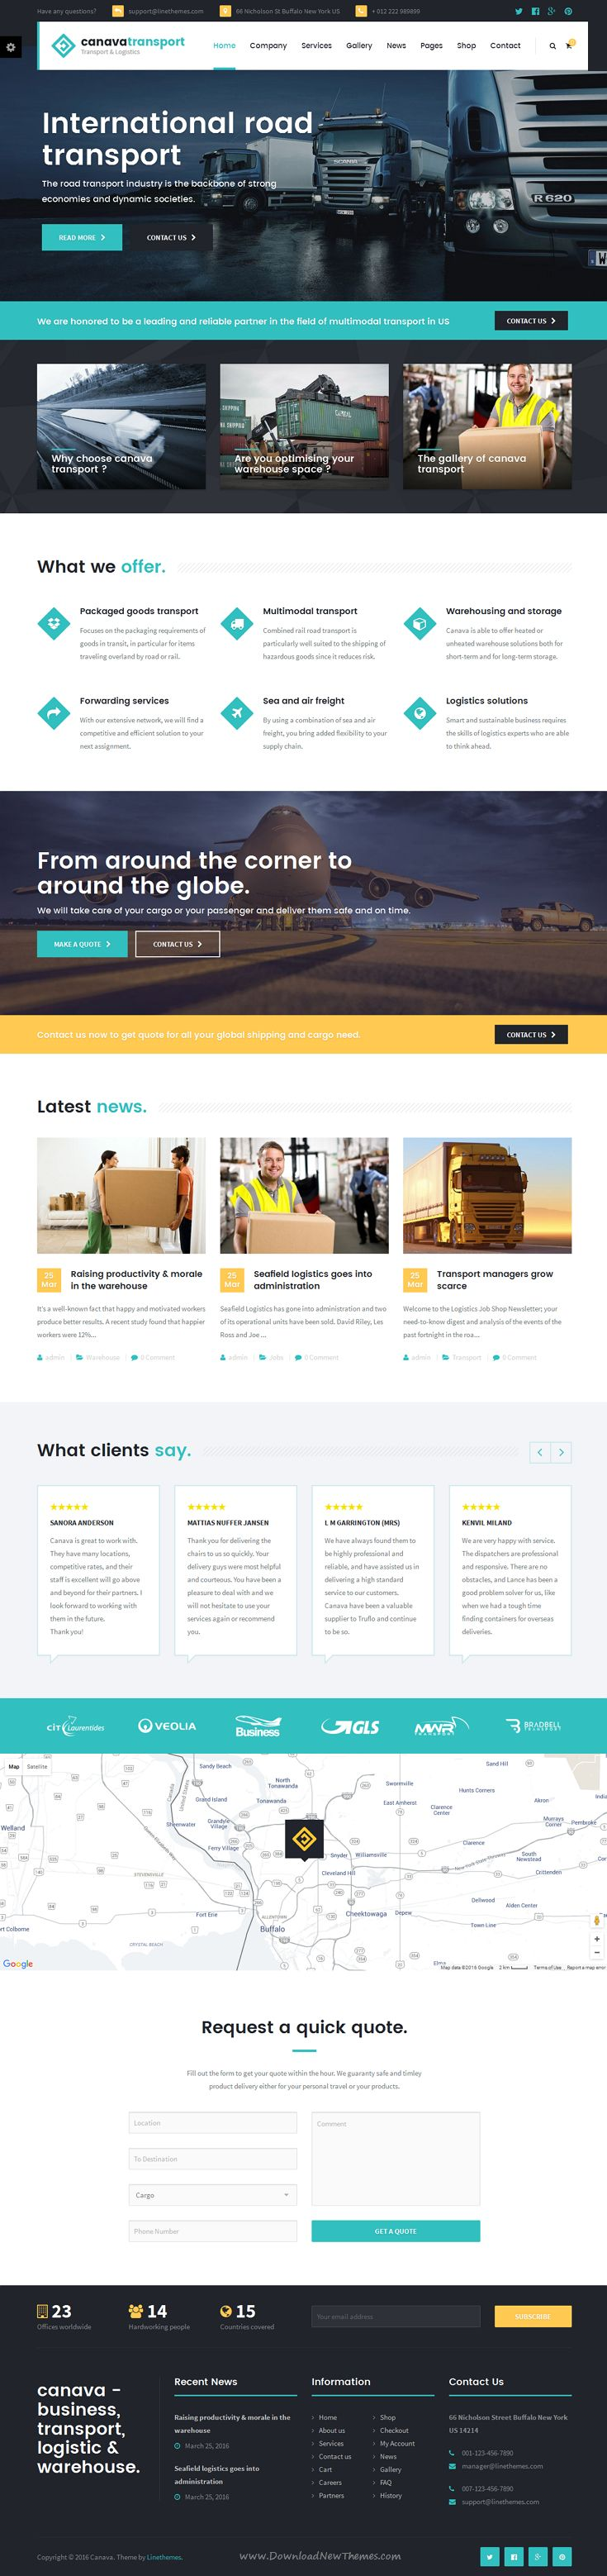 Canava is a premium responsive #WordPress theme created especially for #logistic & transportation companies, offices #website.